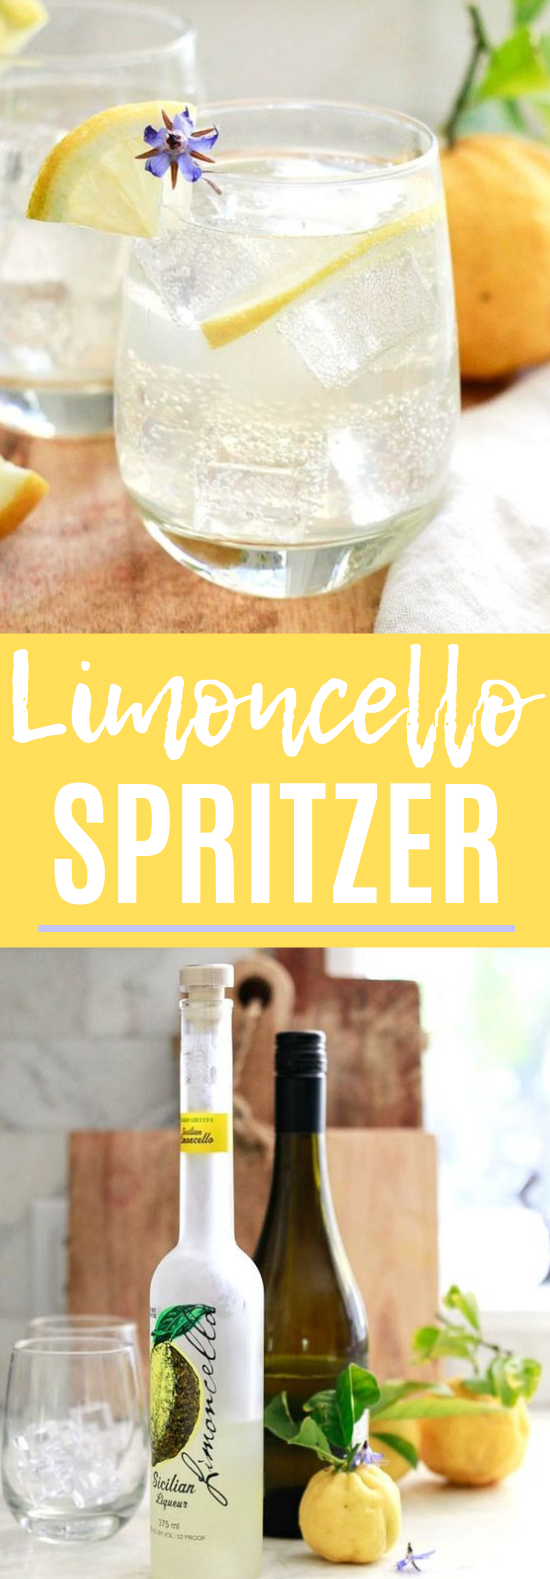 Limoncello Spritzer #lemon #cocktails